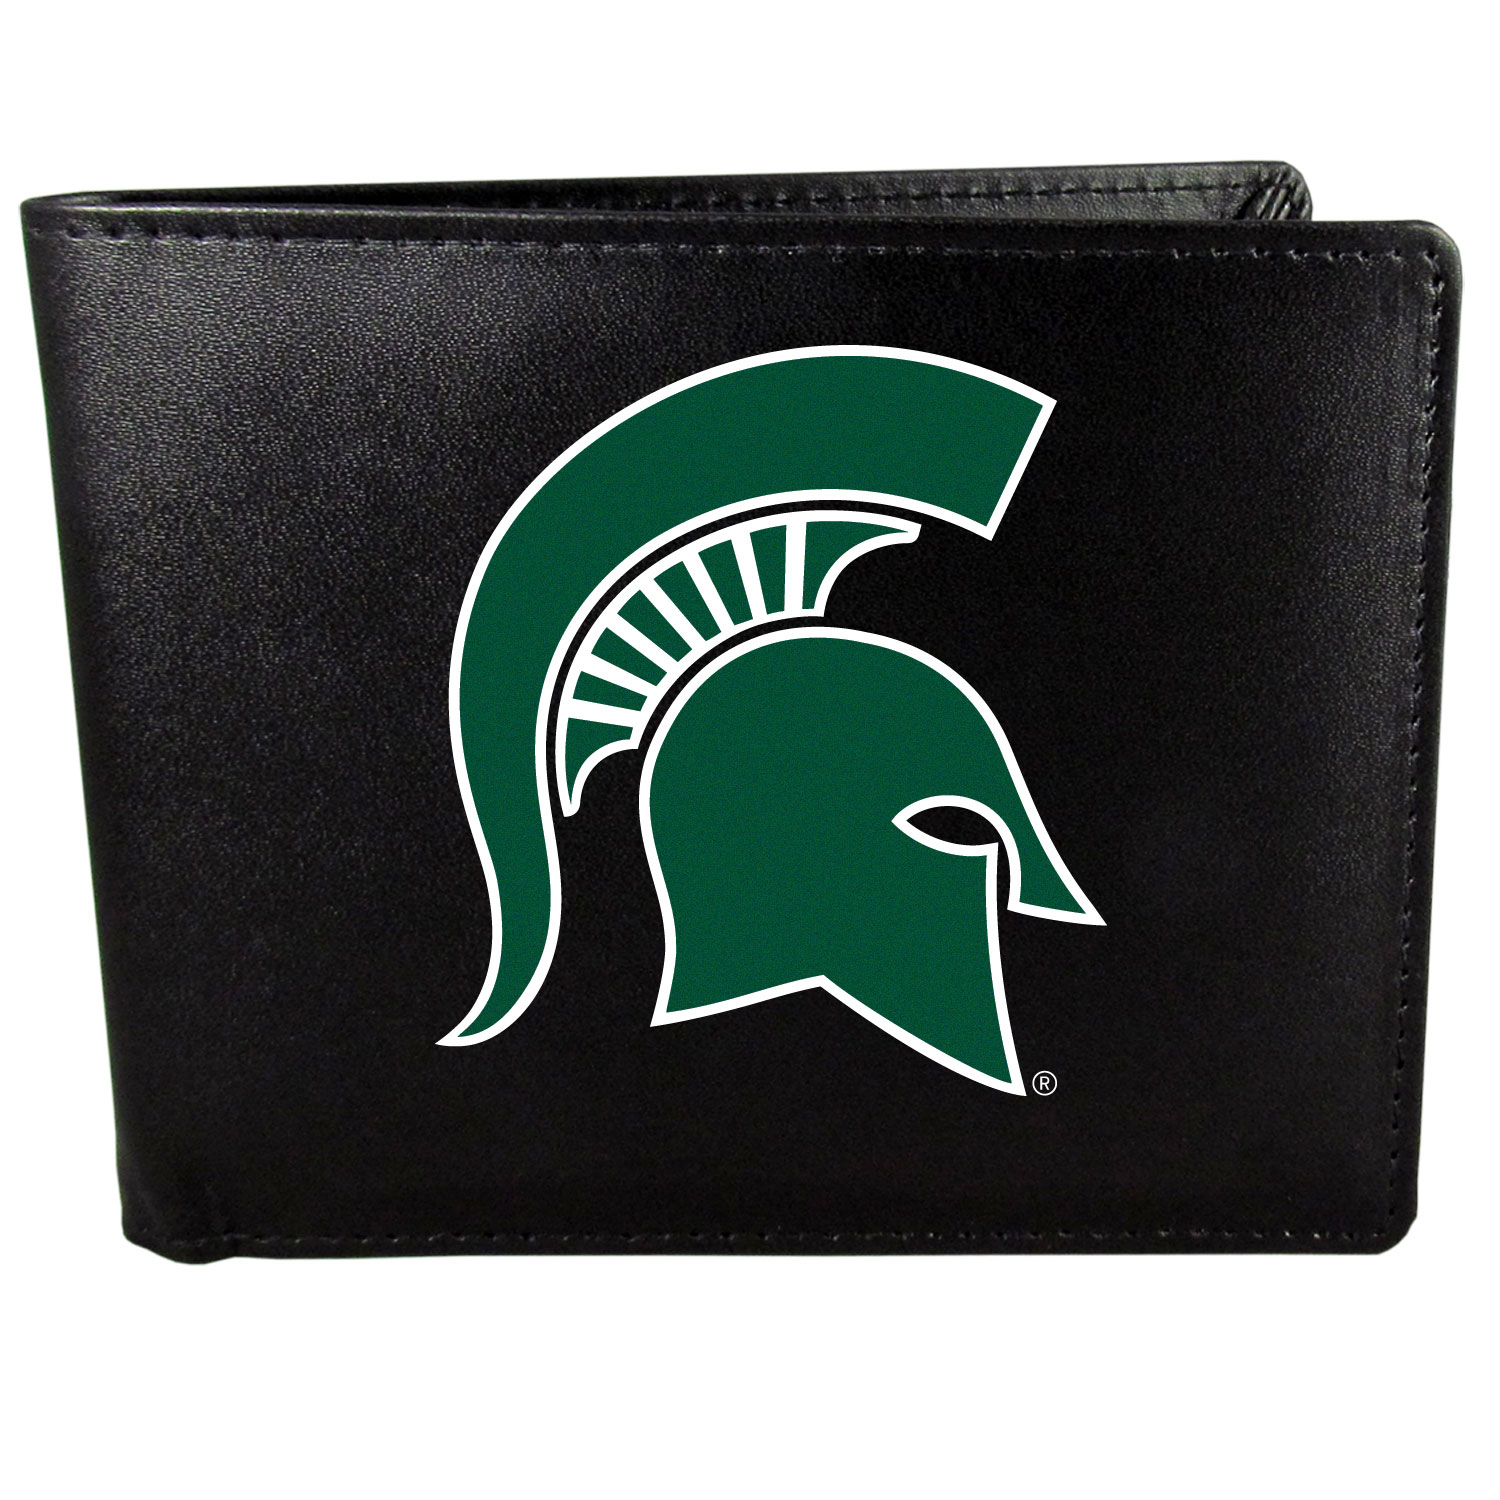 Michigan St. Spartans Leather Bi-fold Wallet, Large Logo - Our classic fine leather bi-fold wallet is meticulously crafted with genuine leather that will age beautifully so you will have a quality wallet for years to come. The wallet opens to a large, billfold pocket and numerous credit card slots and has a convenient windowed ID slot. The front of the wallet features an extra large Michigan St. Spartans printed logo.